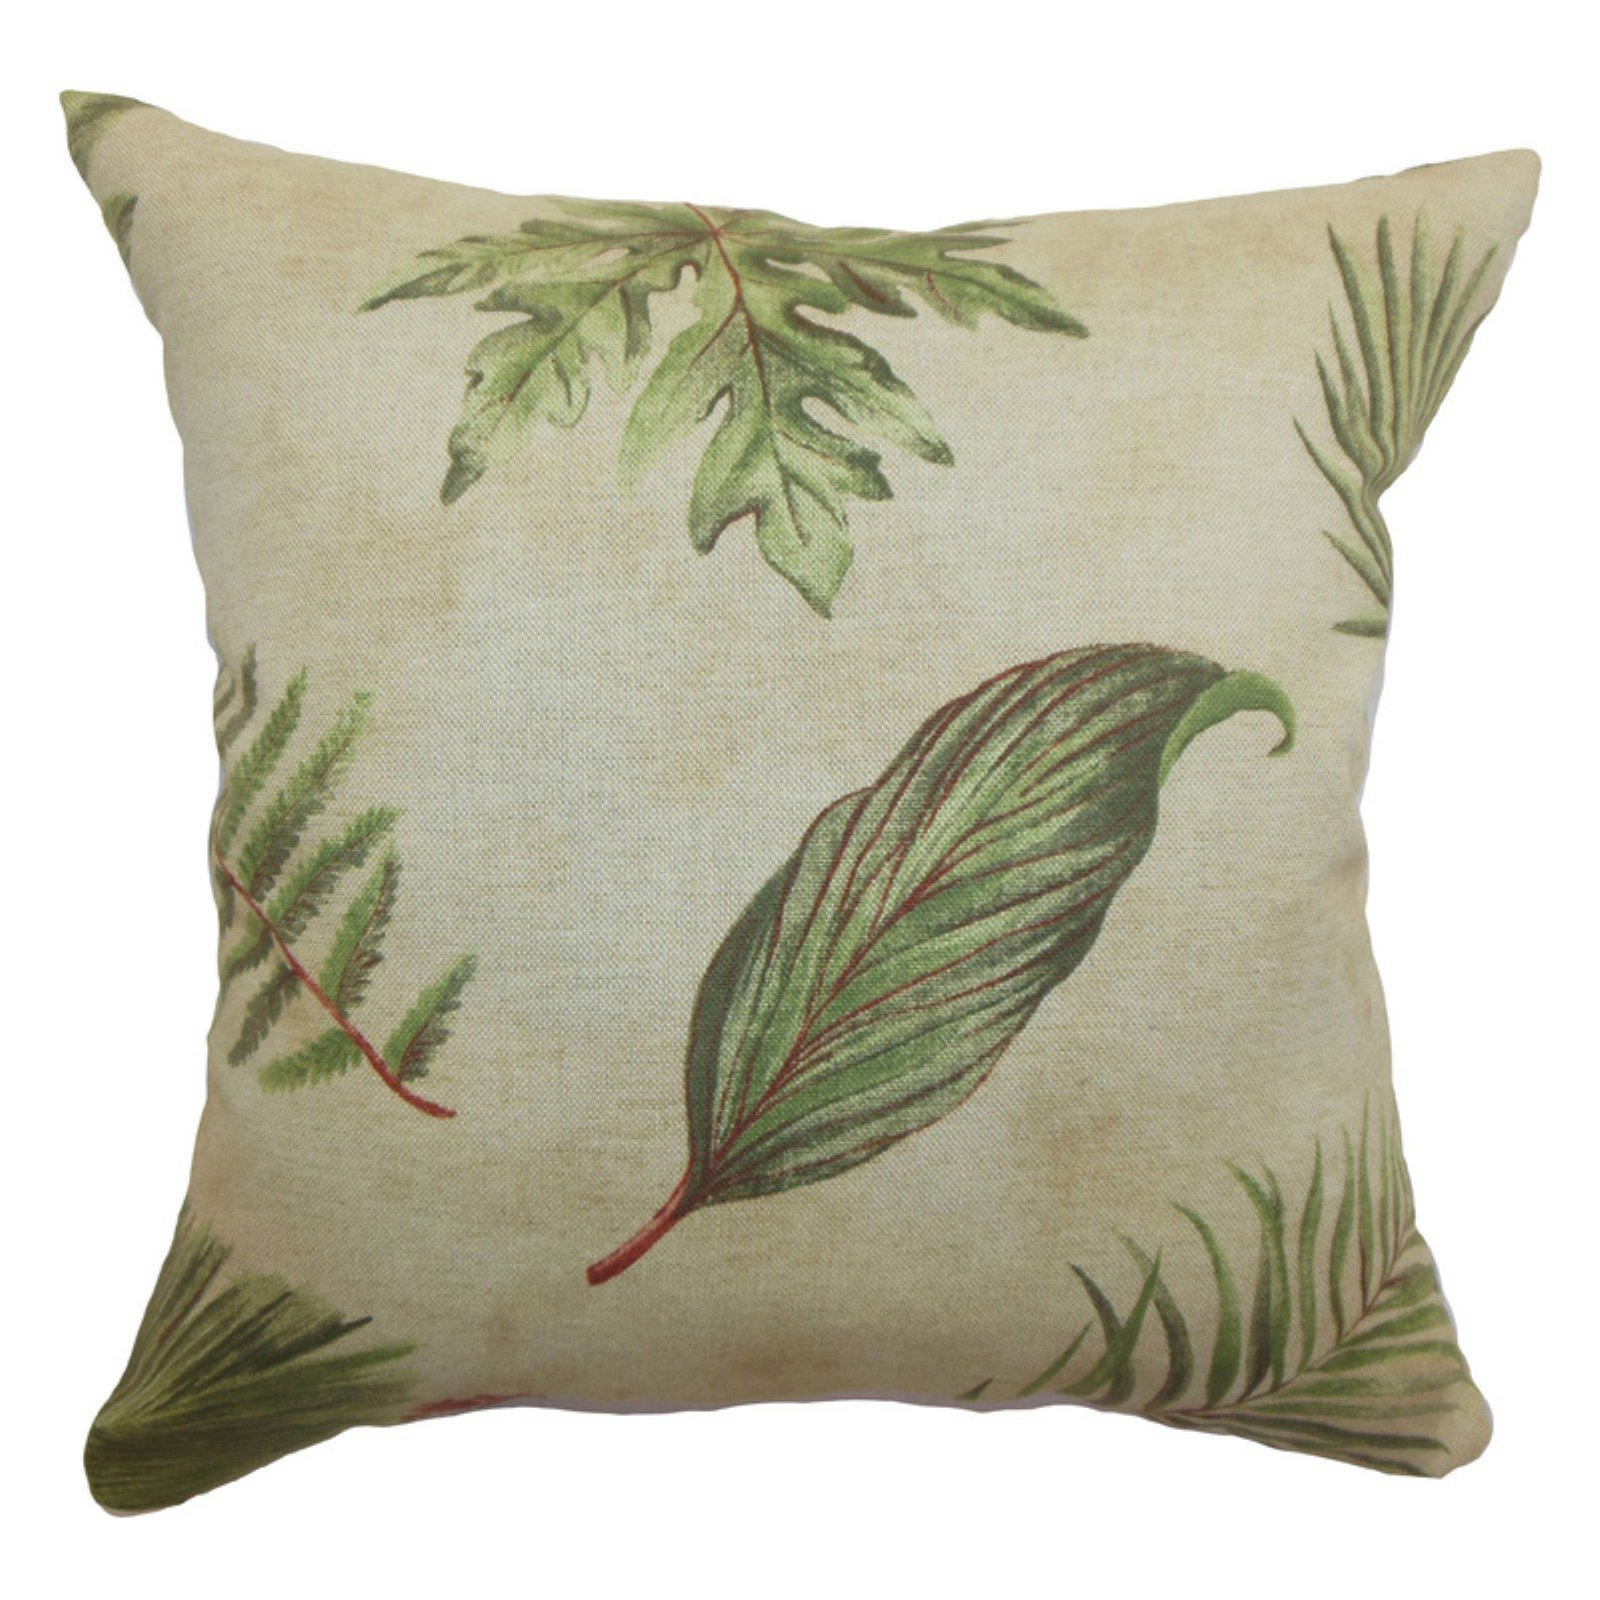 The Pillow Collection Barsia Leaf Pillow - Palm